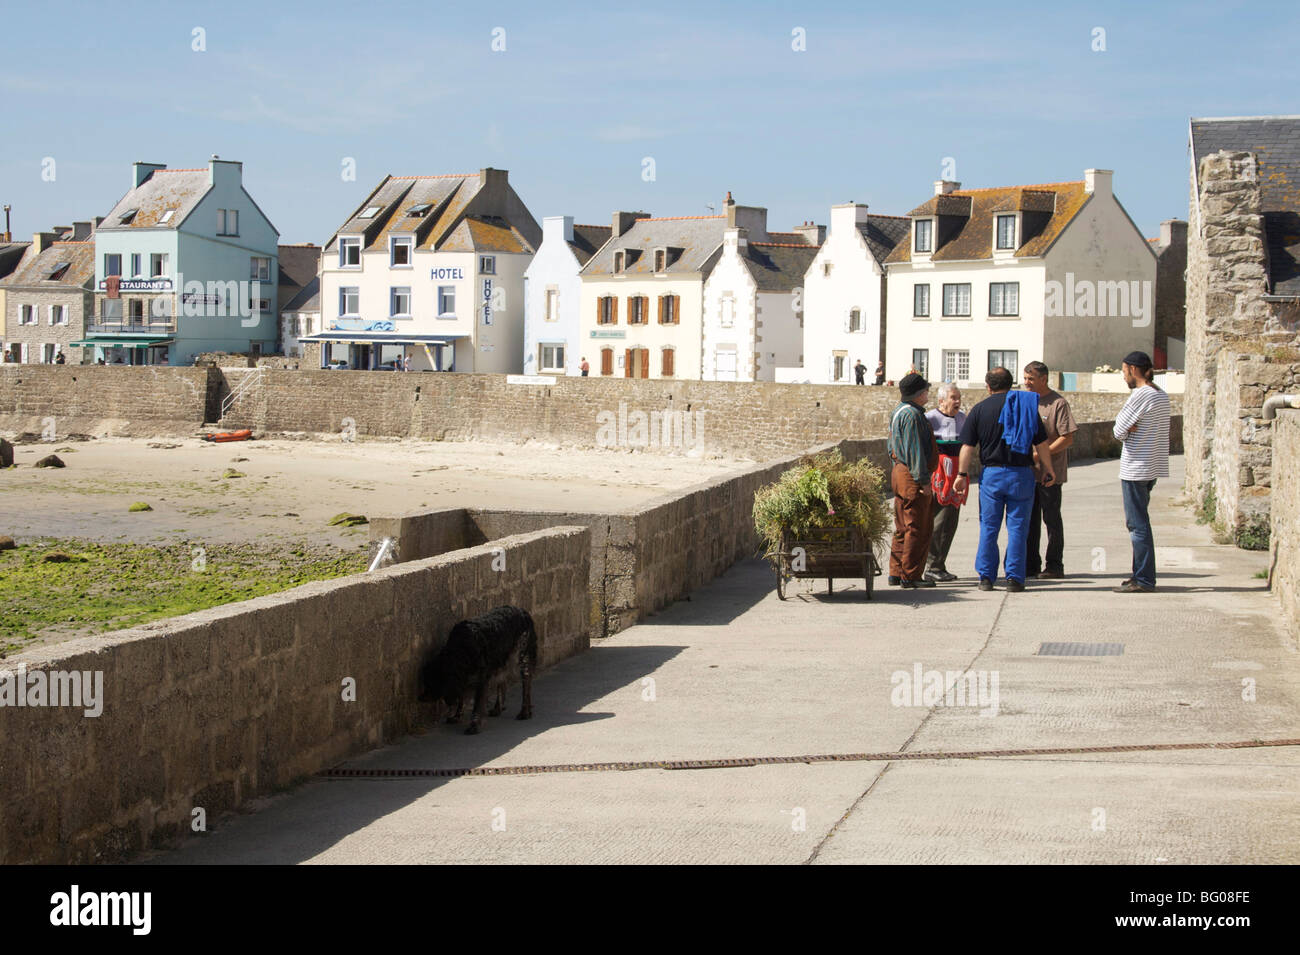 Locals on harbour front, Ile de Sein, Brittany, France, Europe - Stock Image